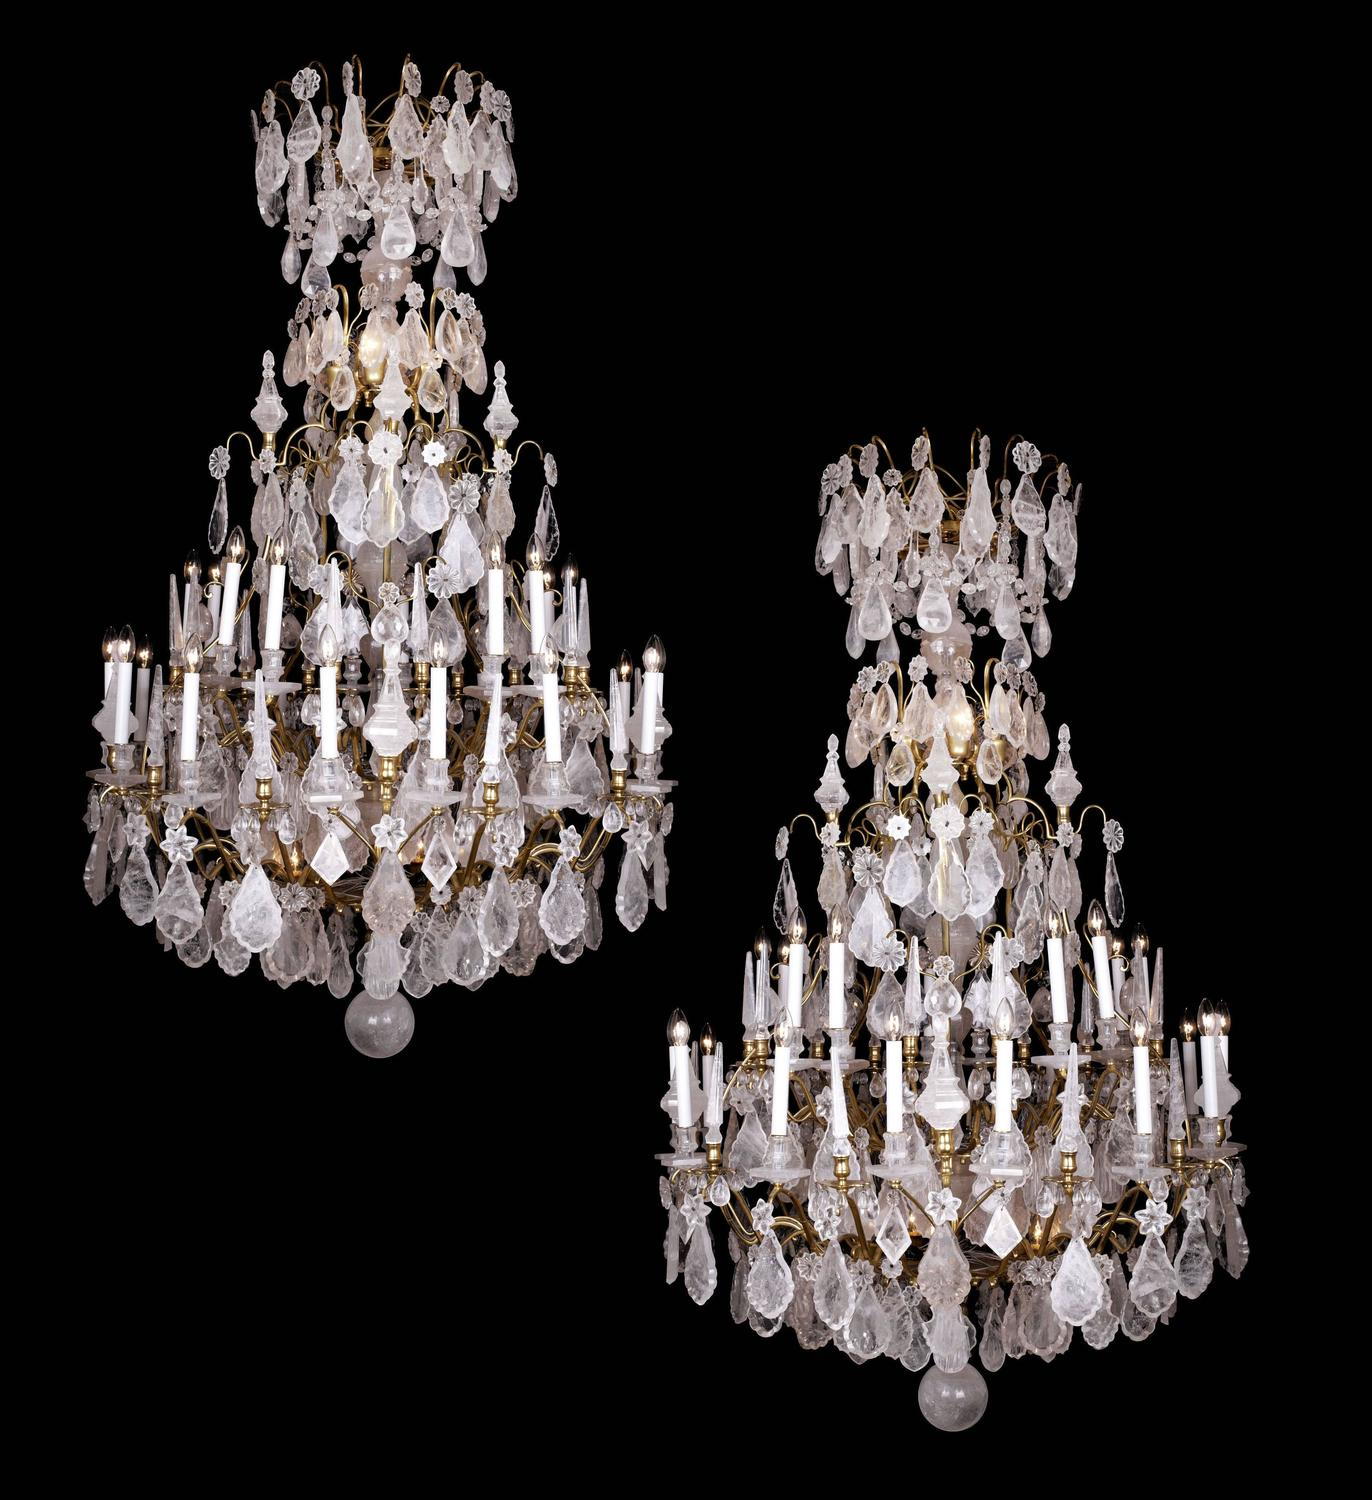 Unique large pair of rock crystal classical louis xv style chandeliers for sale at 1stdibs - Unique crystal chandeliers ...